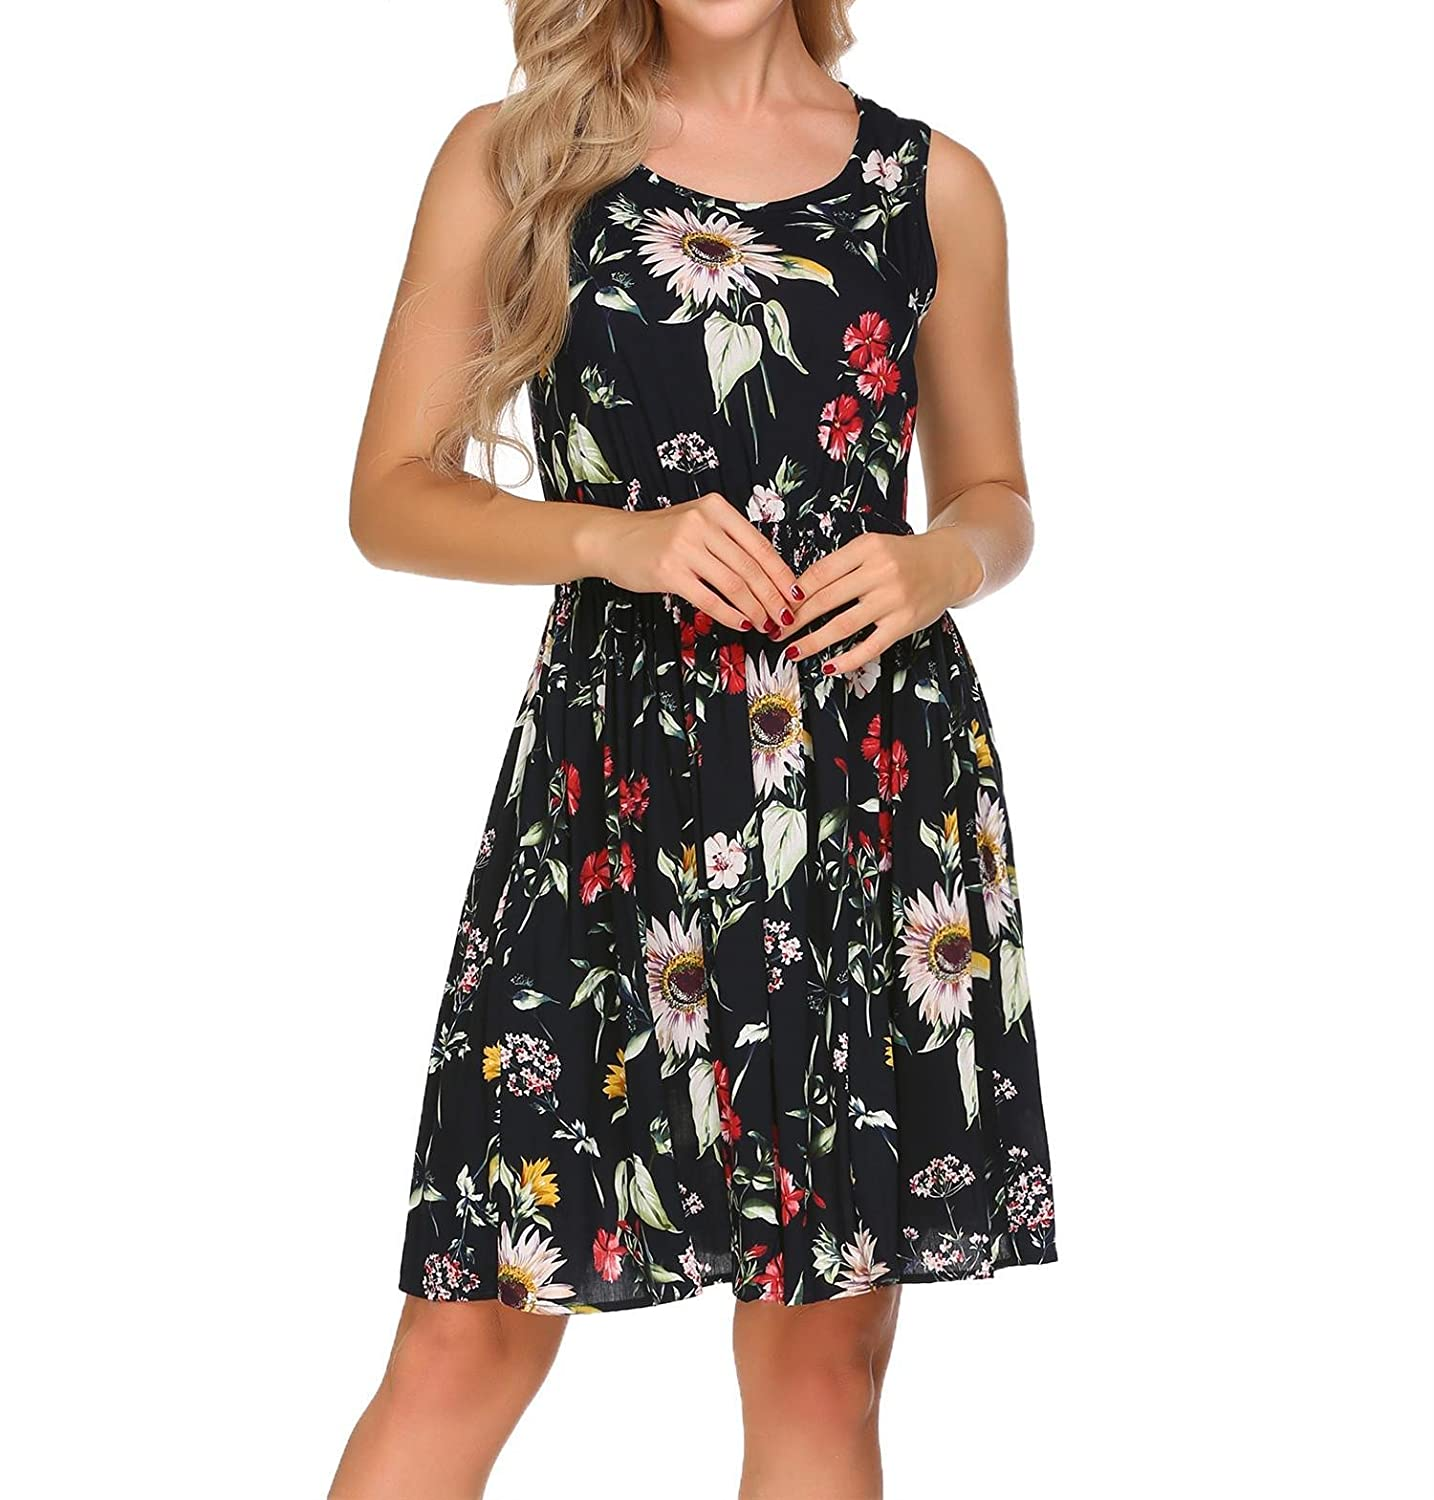 006d190d17 Zeela Womens Casual O-Neck Floral Sundresses Sleeveless Fit and Flare Dress  for Summer at Amazon Women s Clothing store